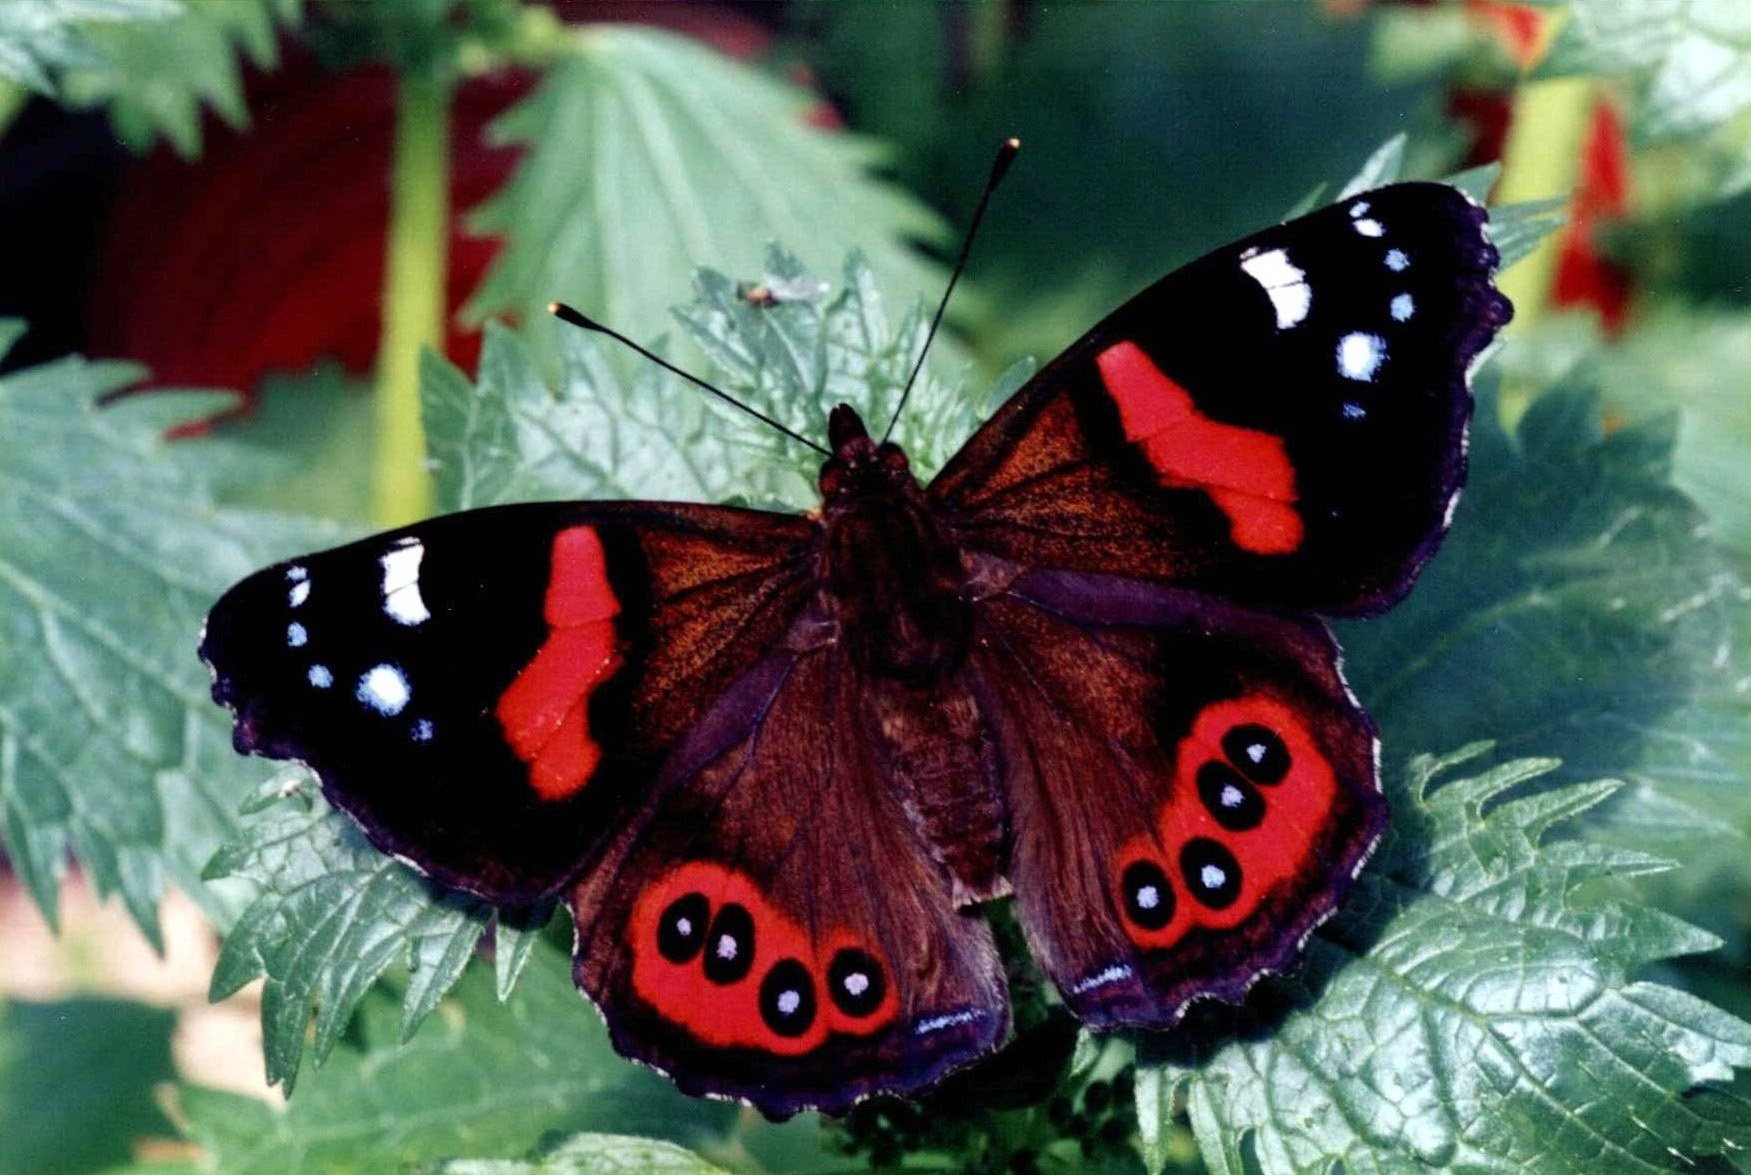 Red Admiral: Facts, Characteristics, Habitat and More